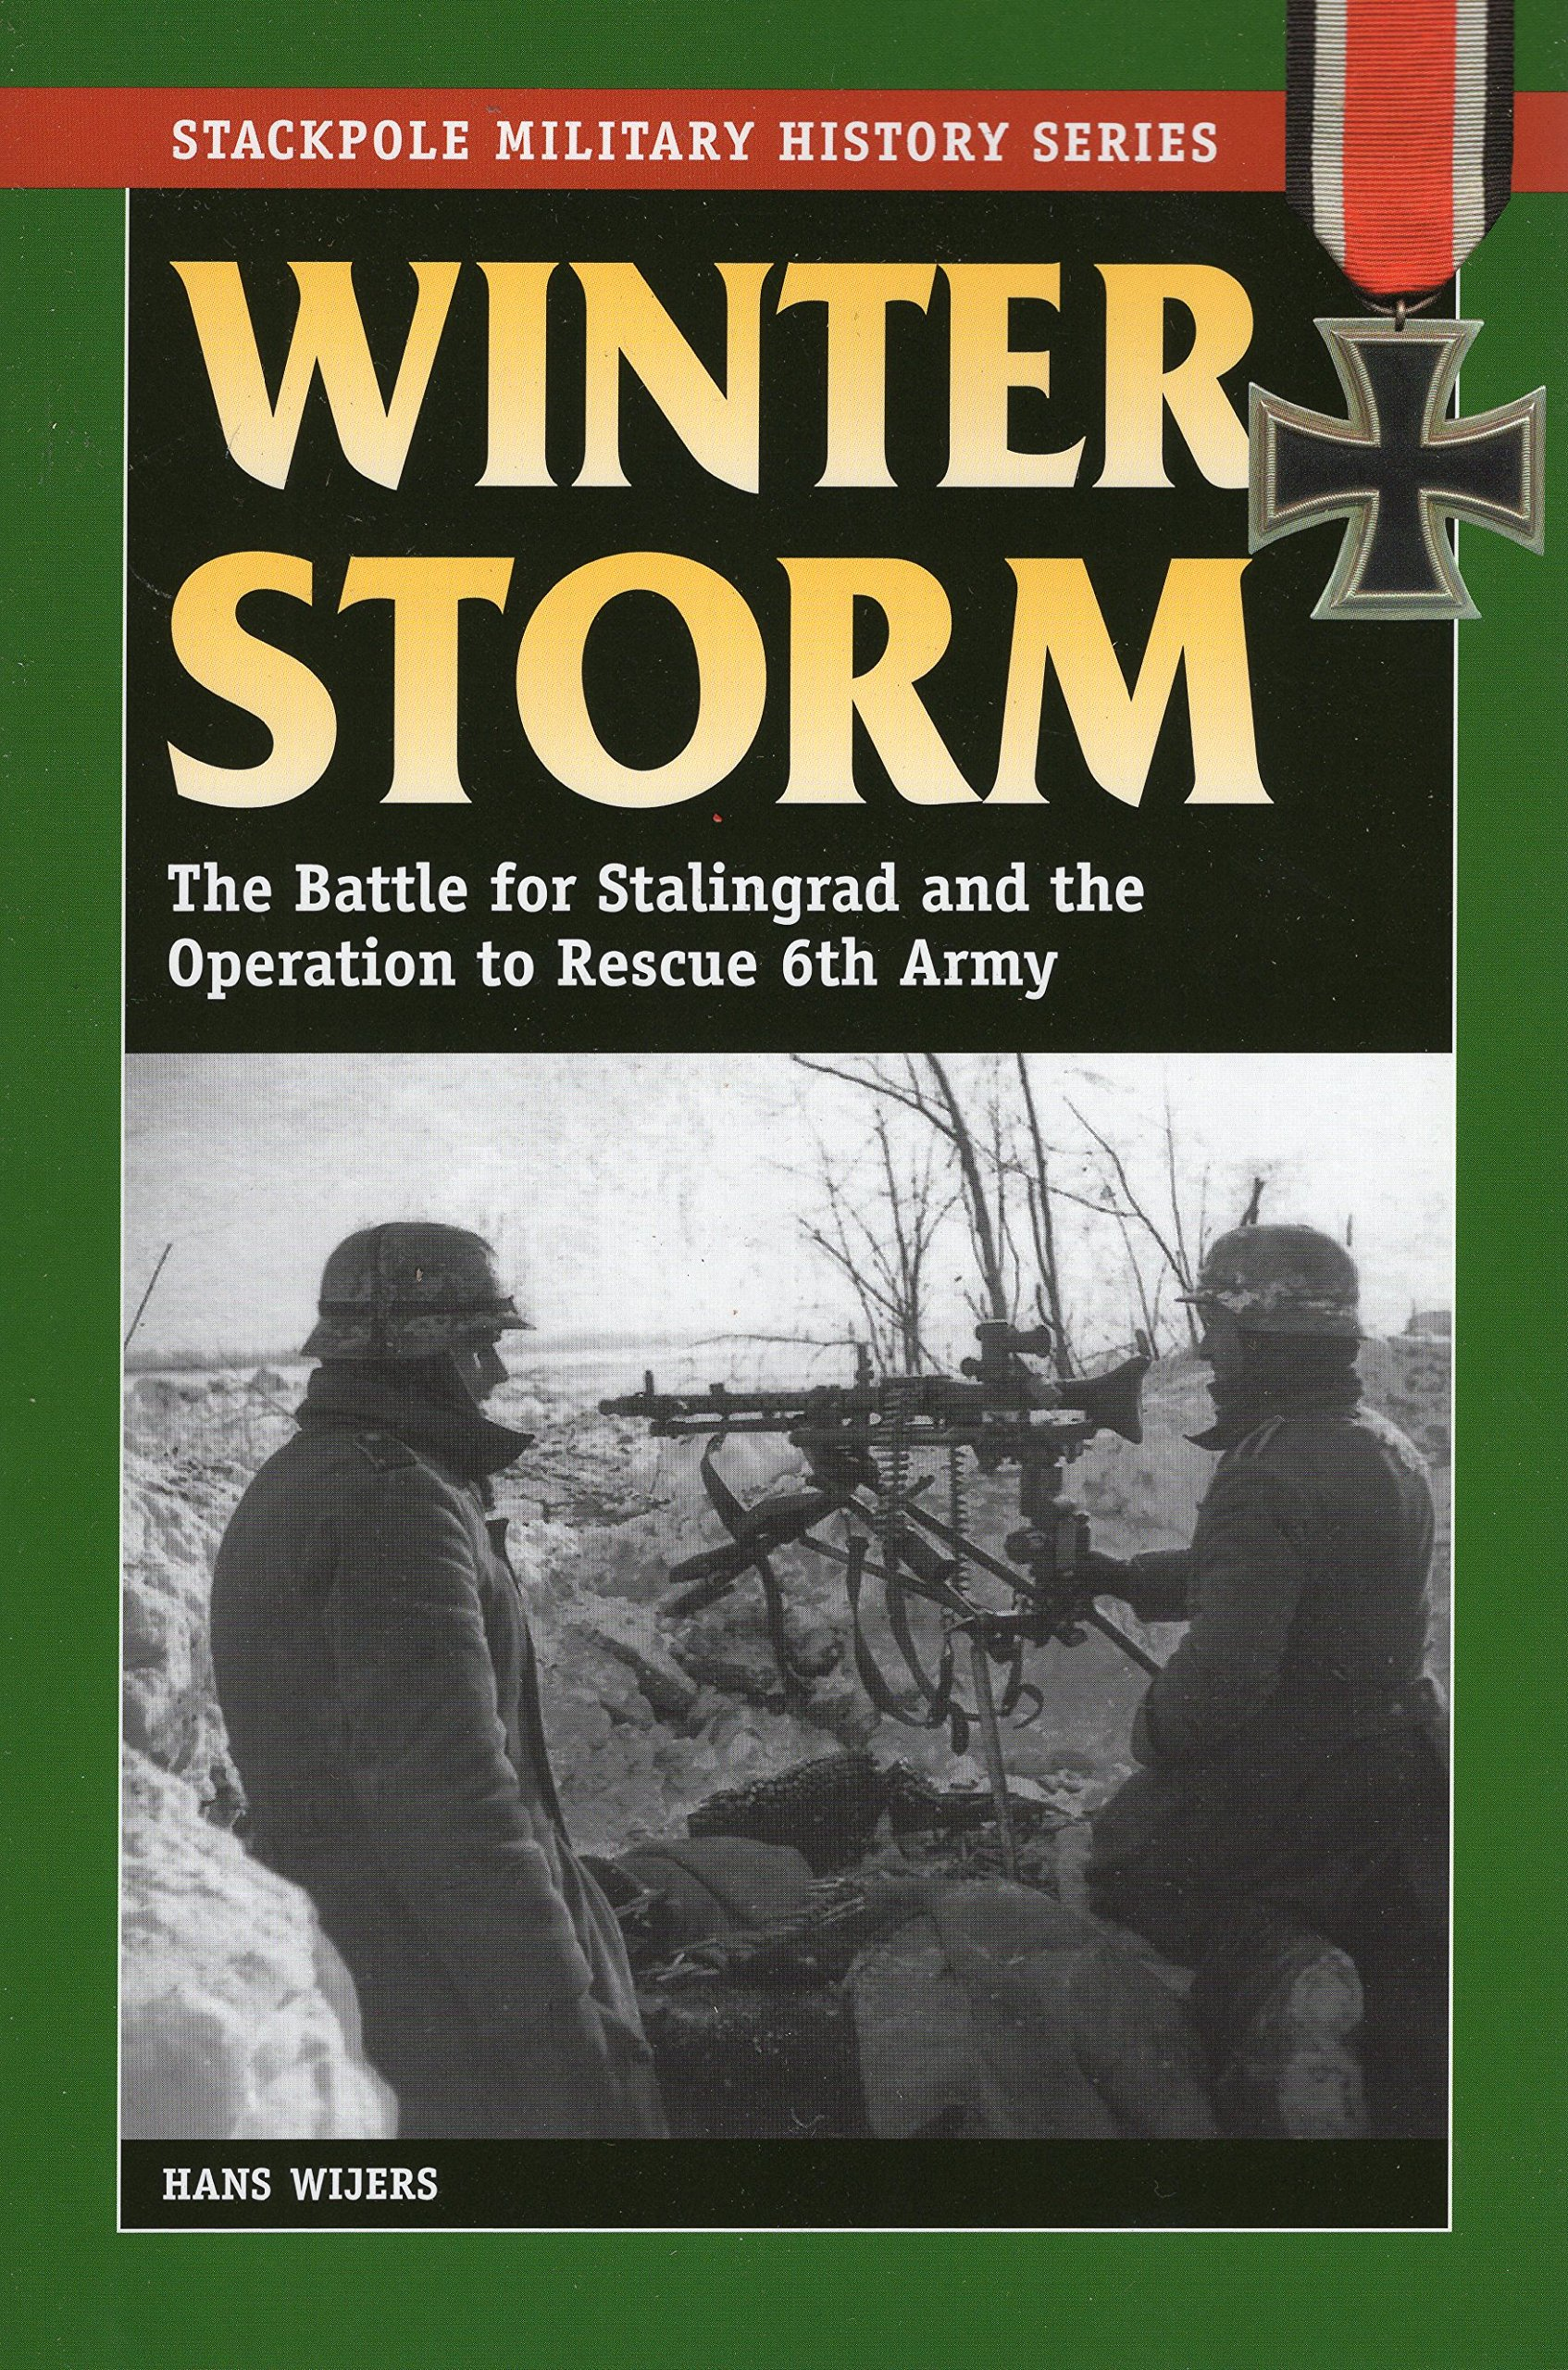 Winter Storm: The Battle for Stalingrad and the Operation to Rescue 6th Army (Stackpole Military History Series) ebook